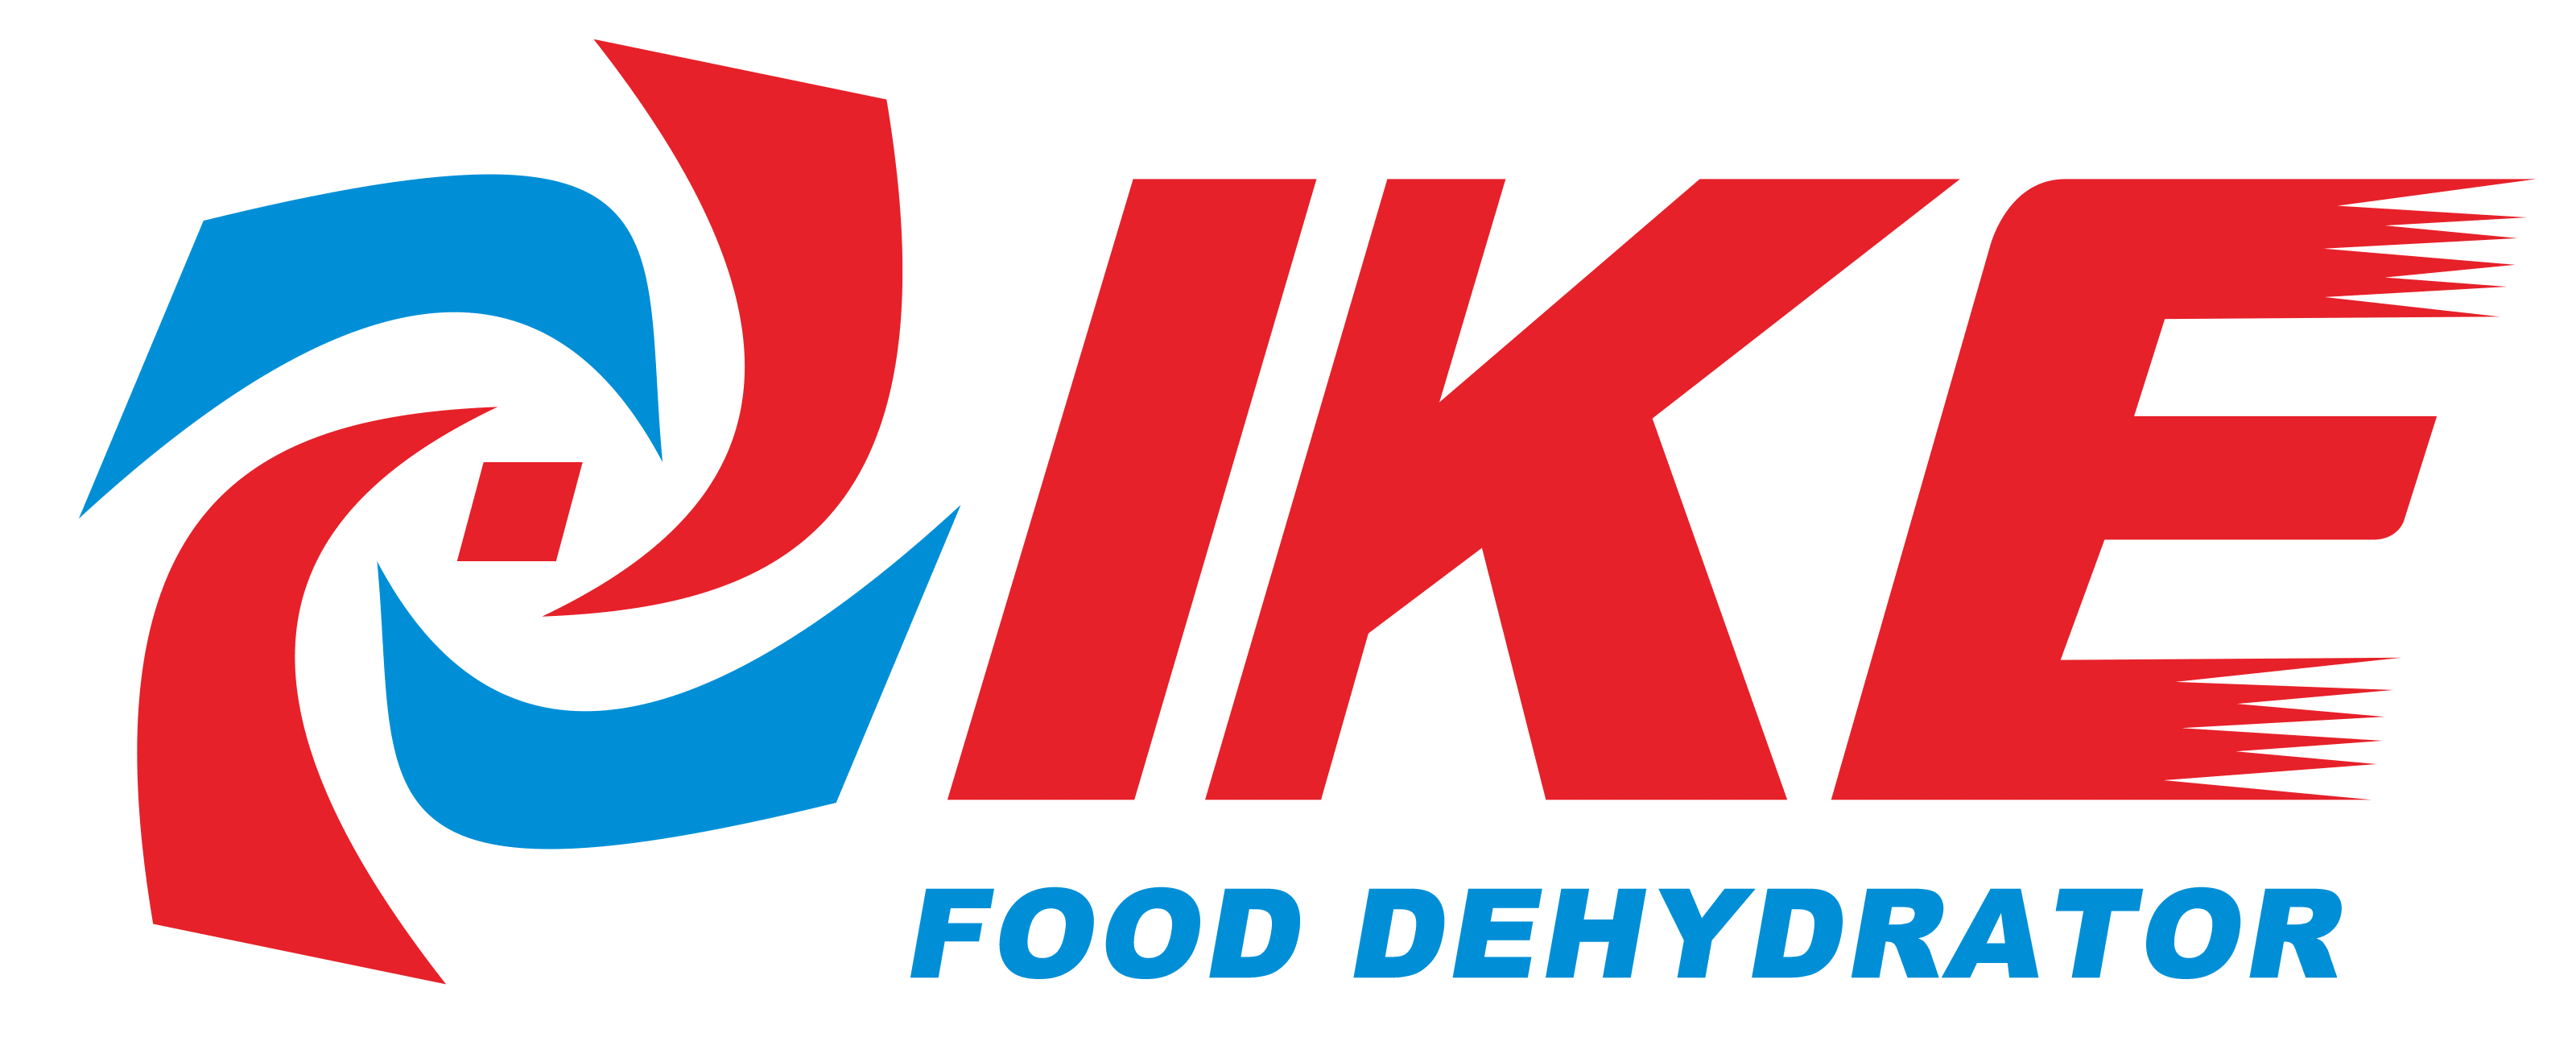 news-IKE-What is the price of dehydrator uk -img-4